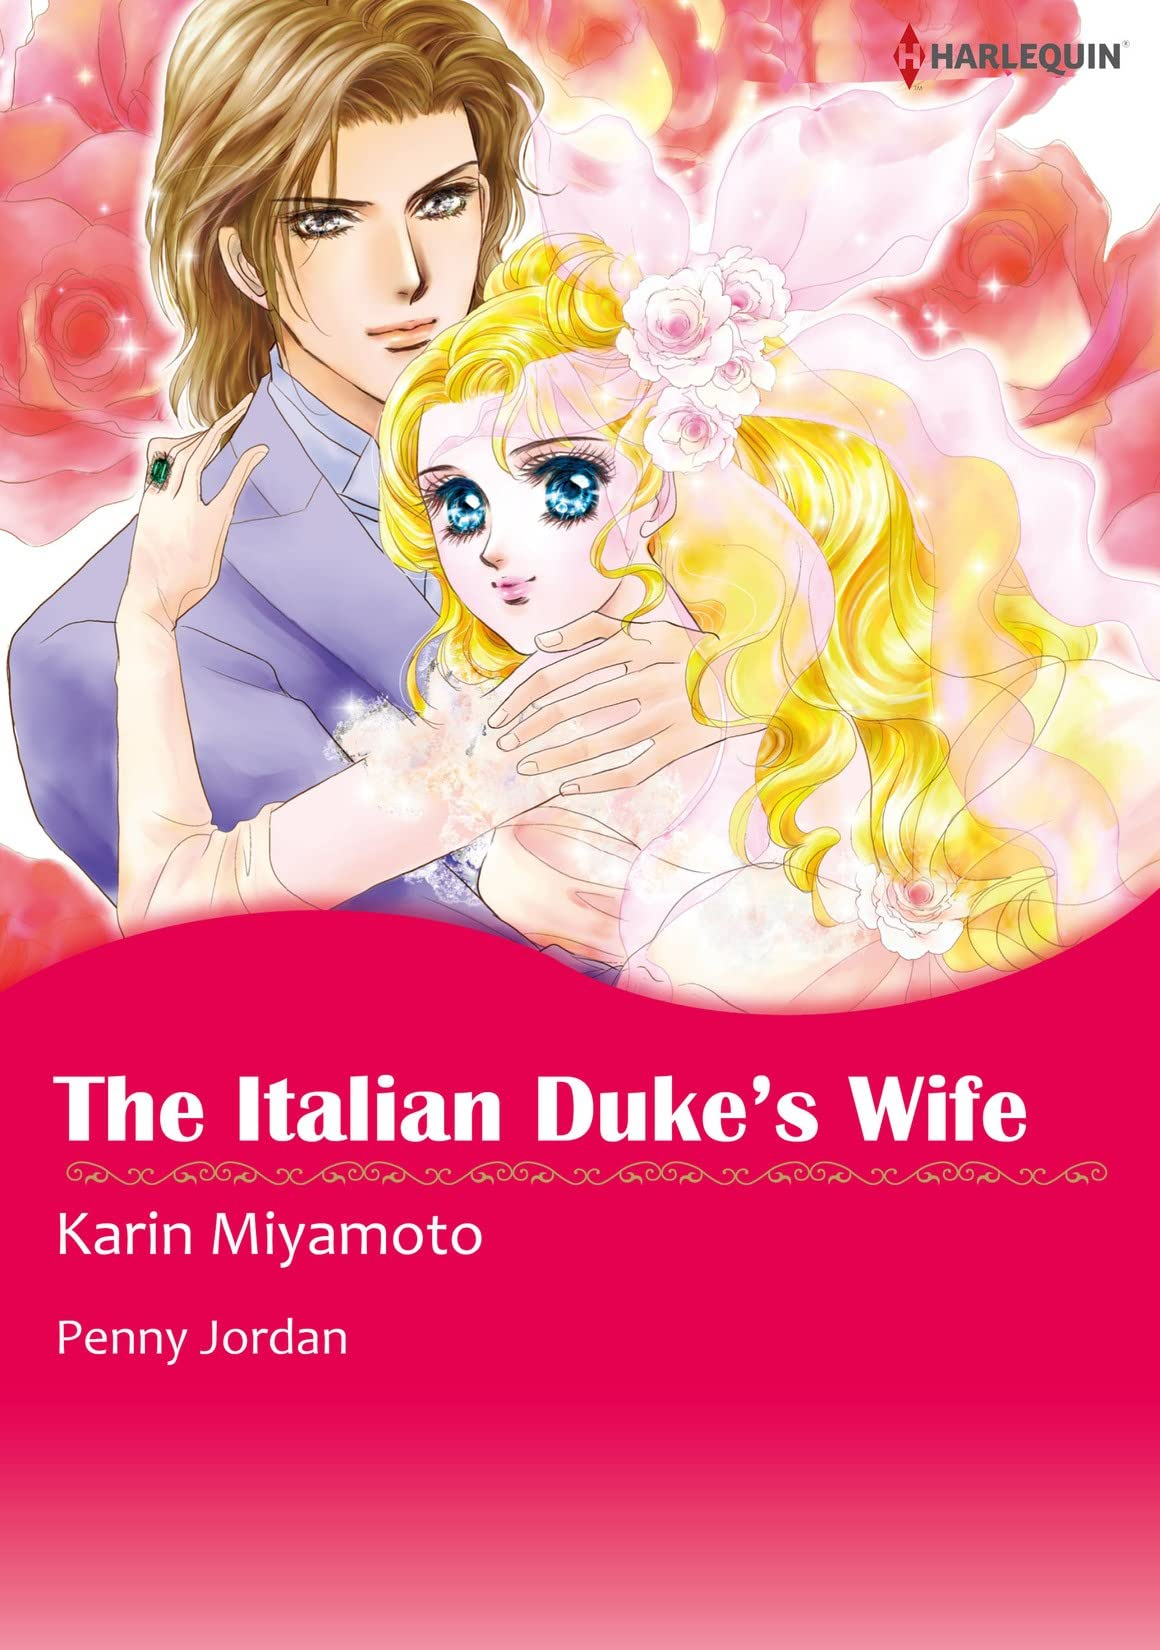 The Italian Duke's Wife